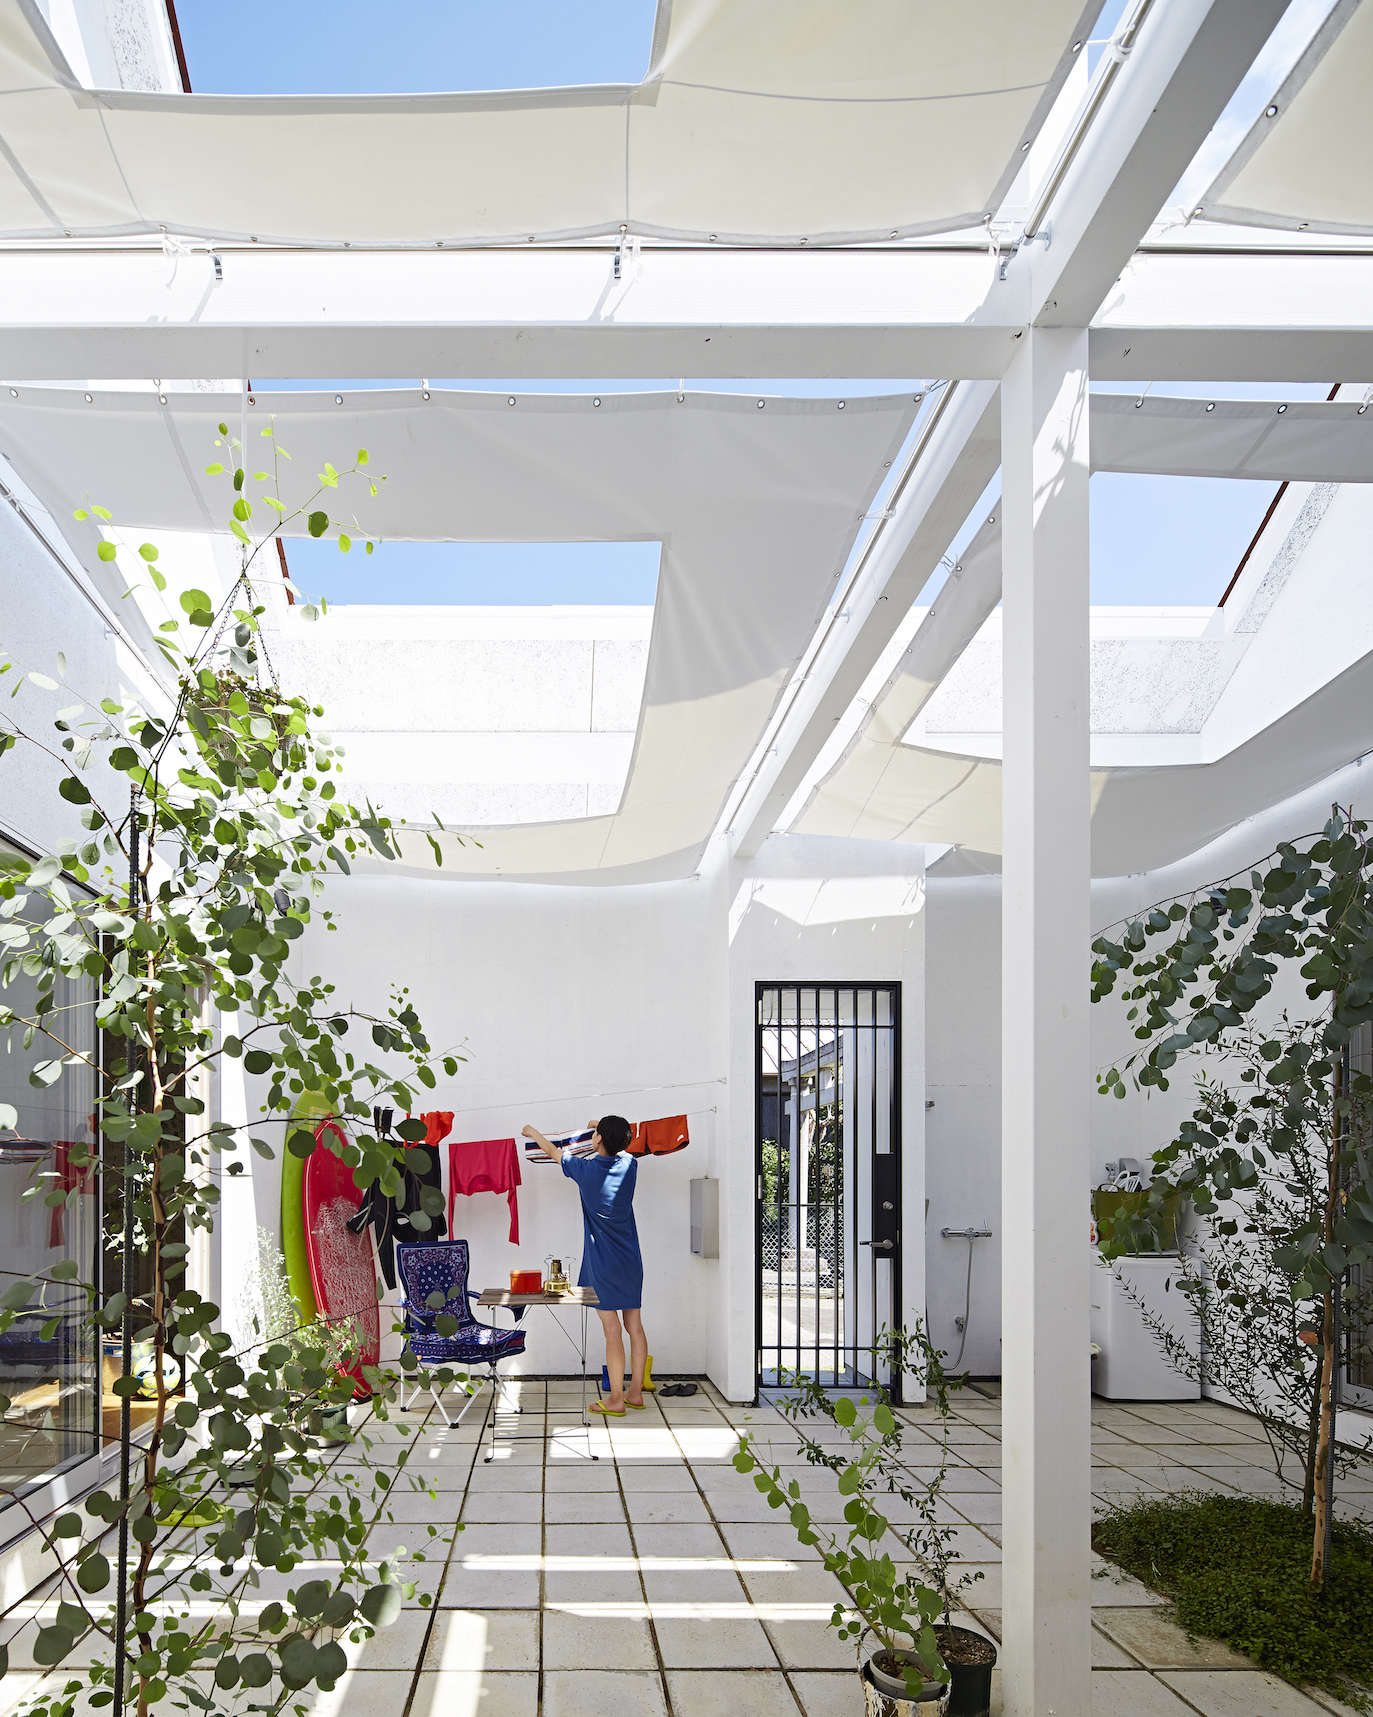 interior courtyard at sabi, a surfers' house in chiba, japan, designed by no. 5 9